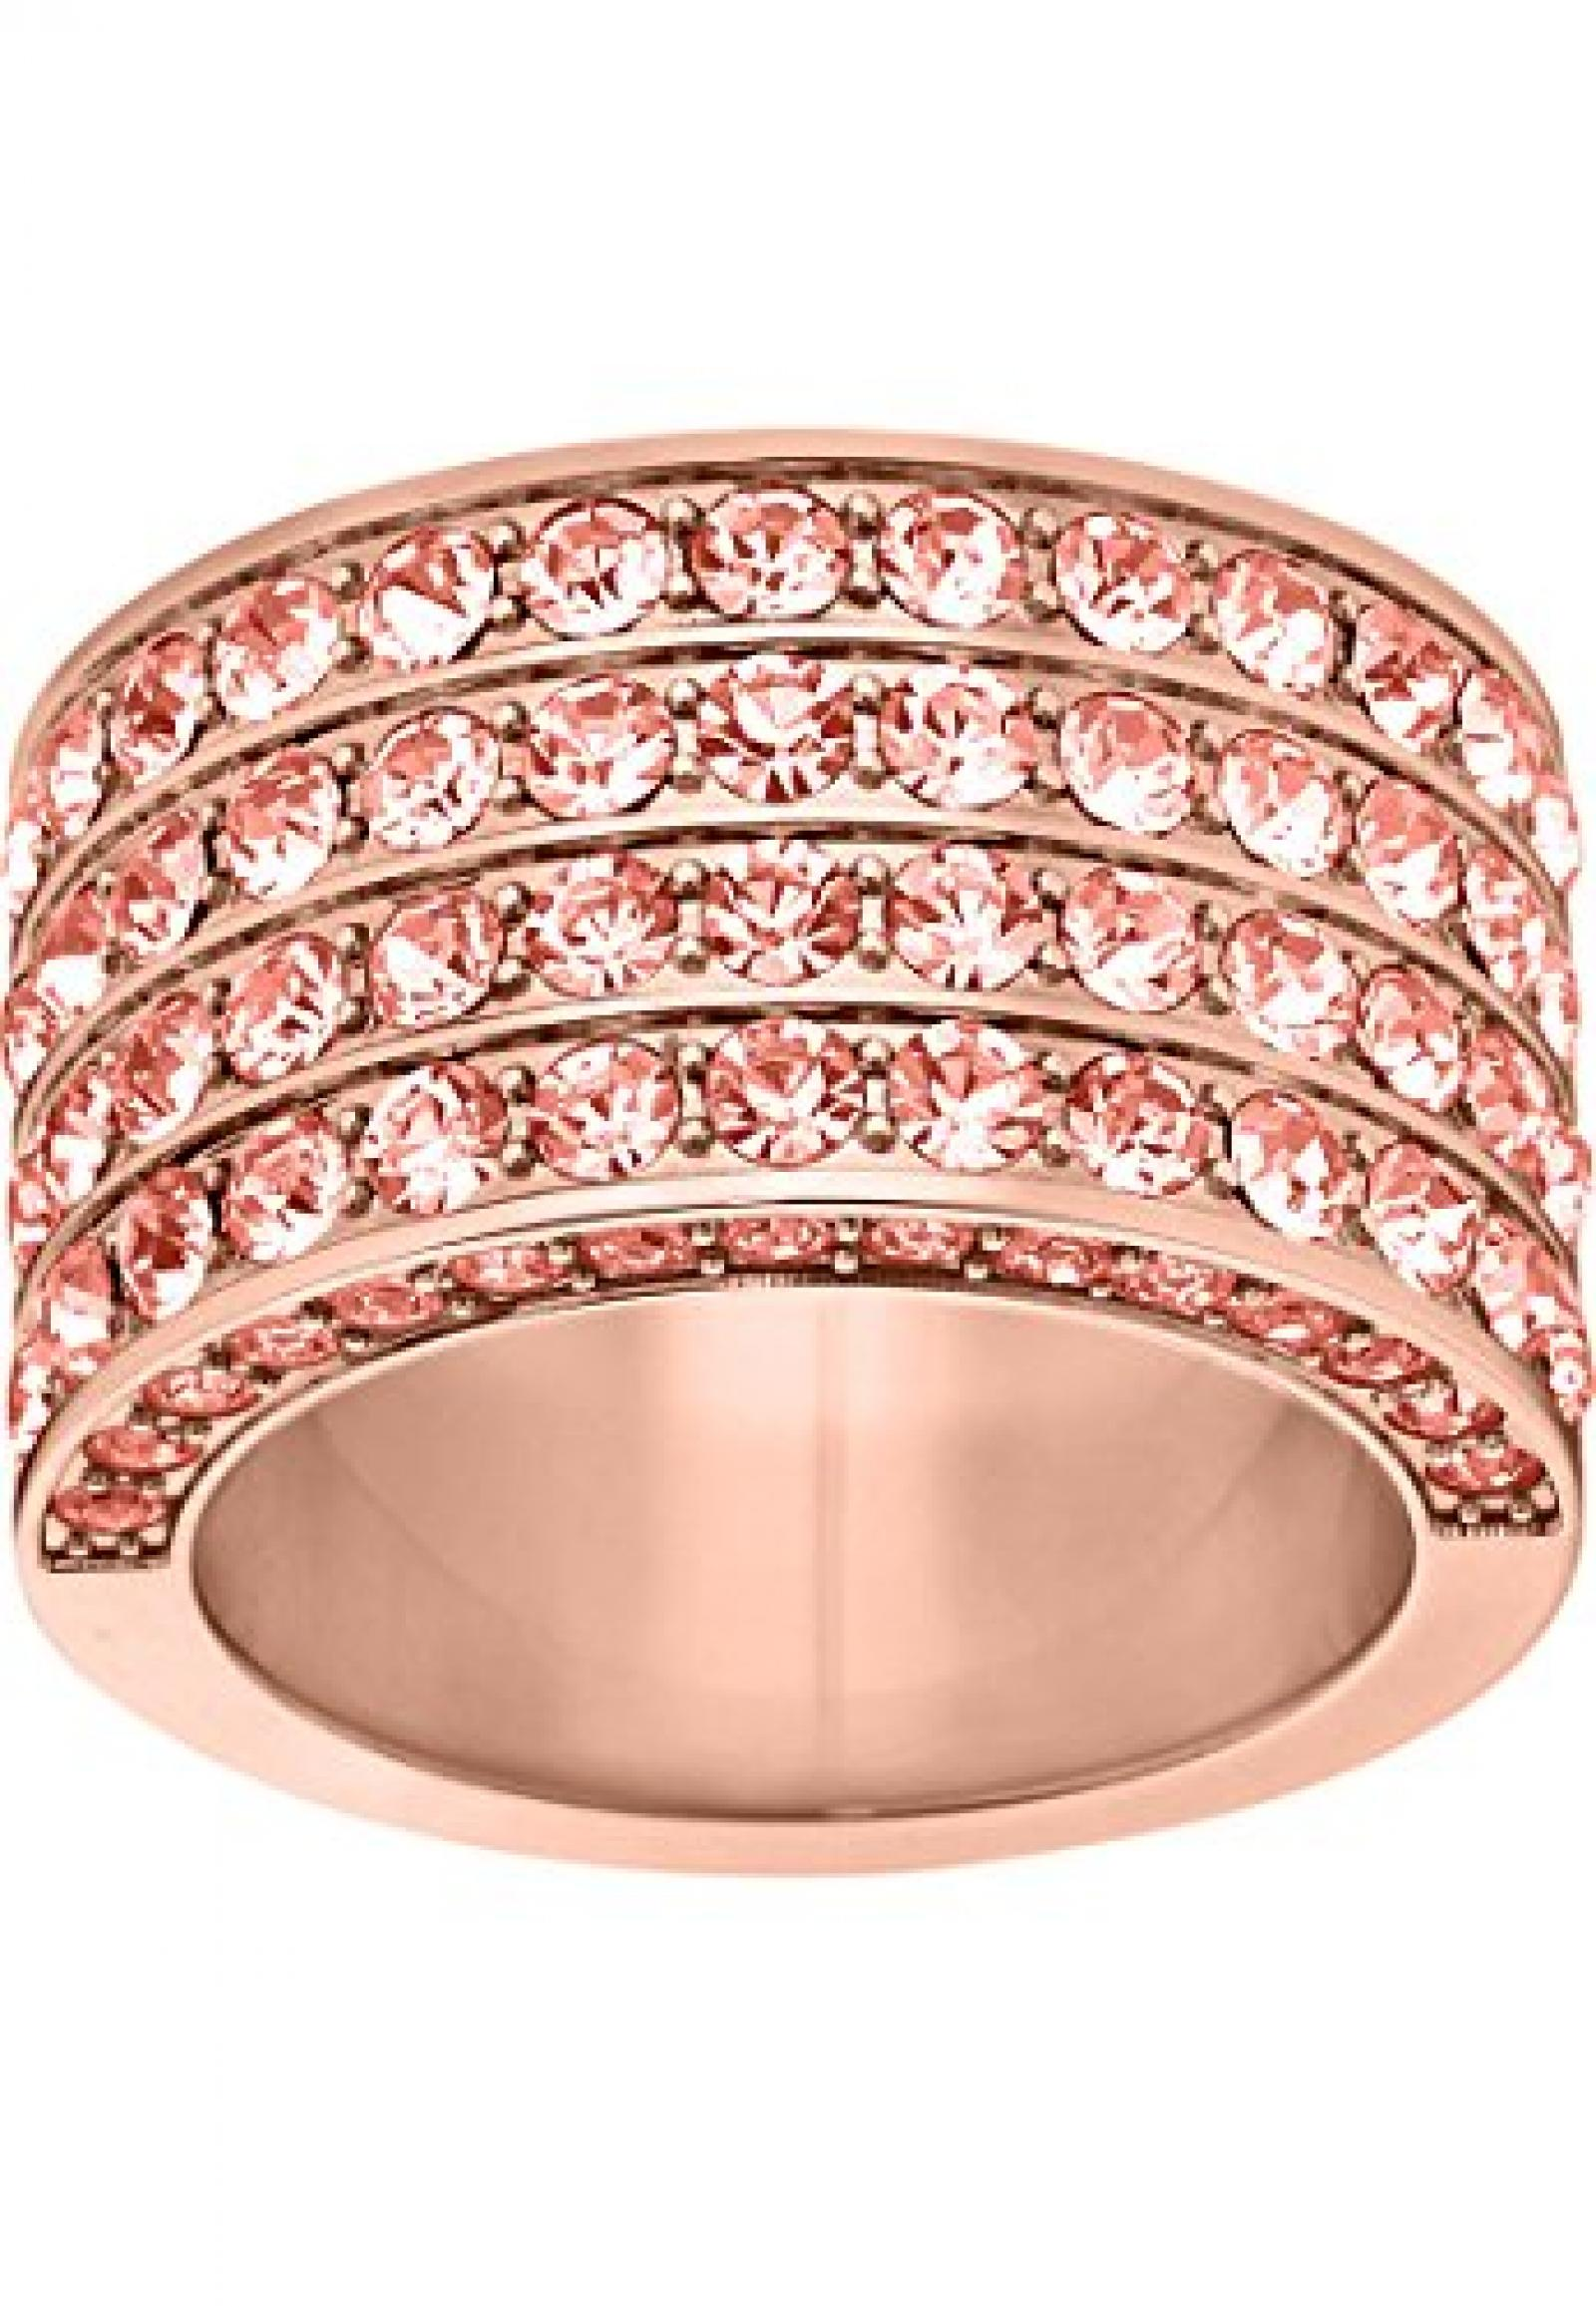 JETTE Magic Passion Damen-Ring JETTE Magic Passion Pure Glam Metall 82 Kristall (roségold)